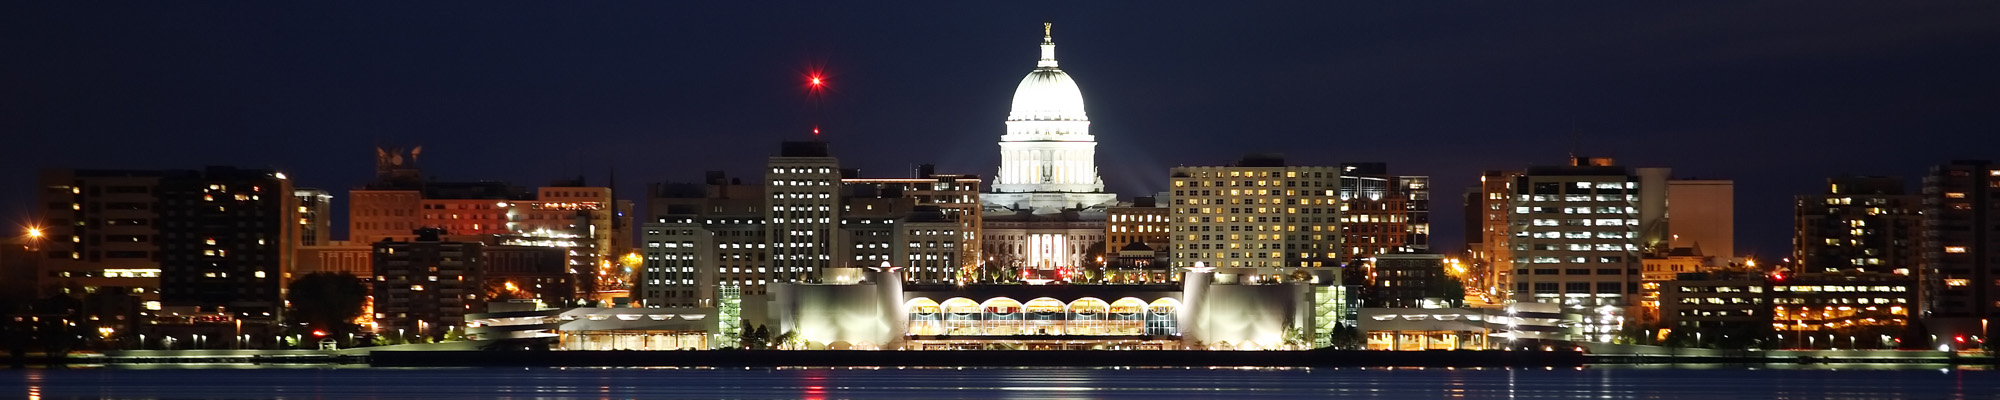 Madison Skyline at Night/Dusk